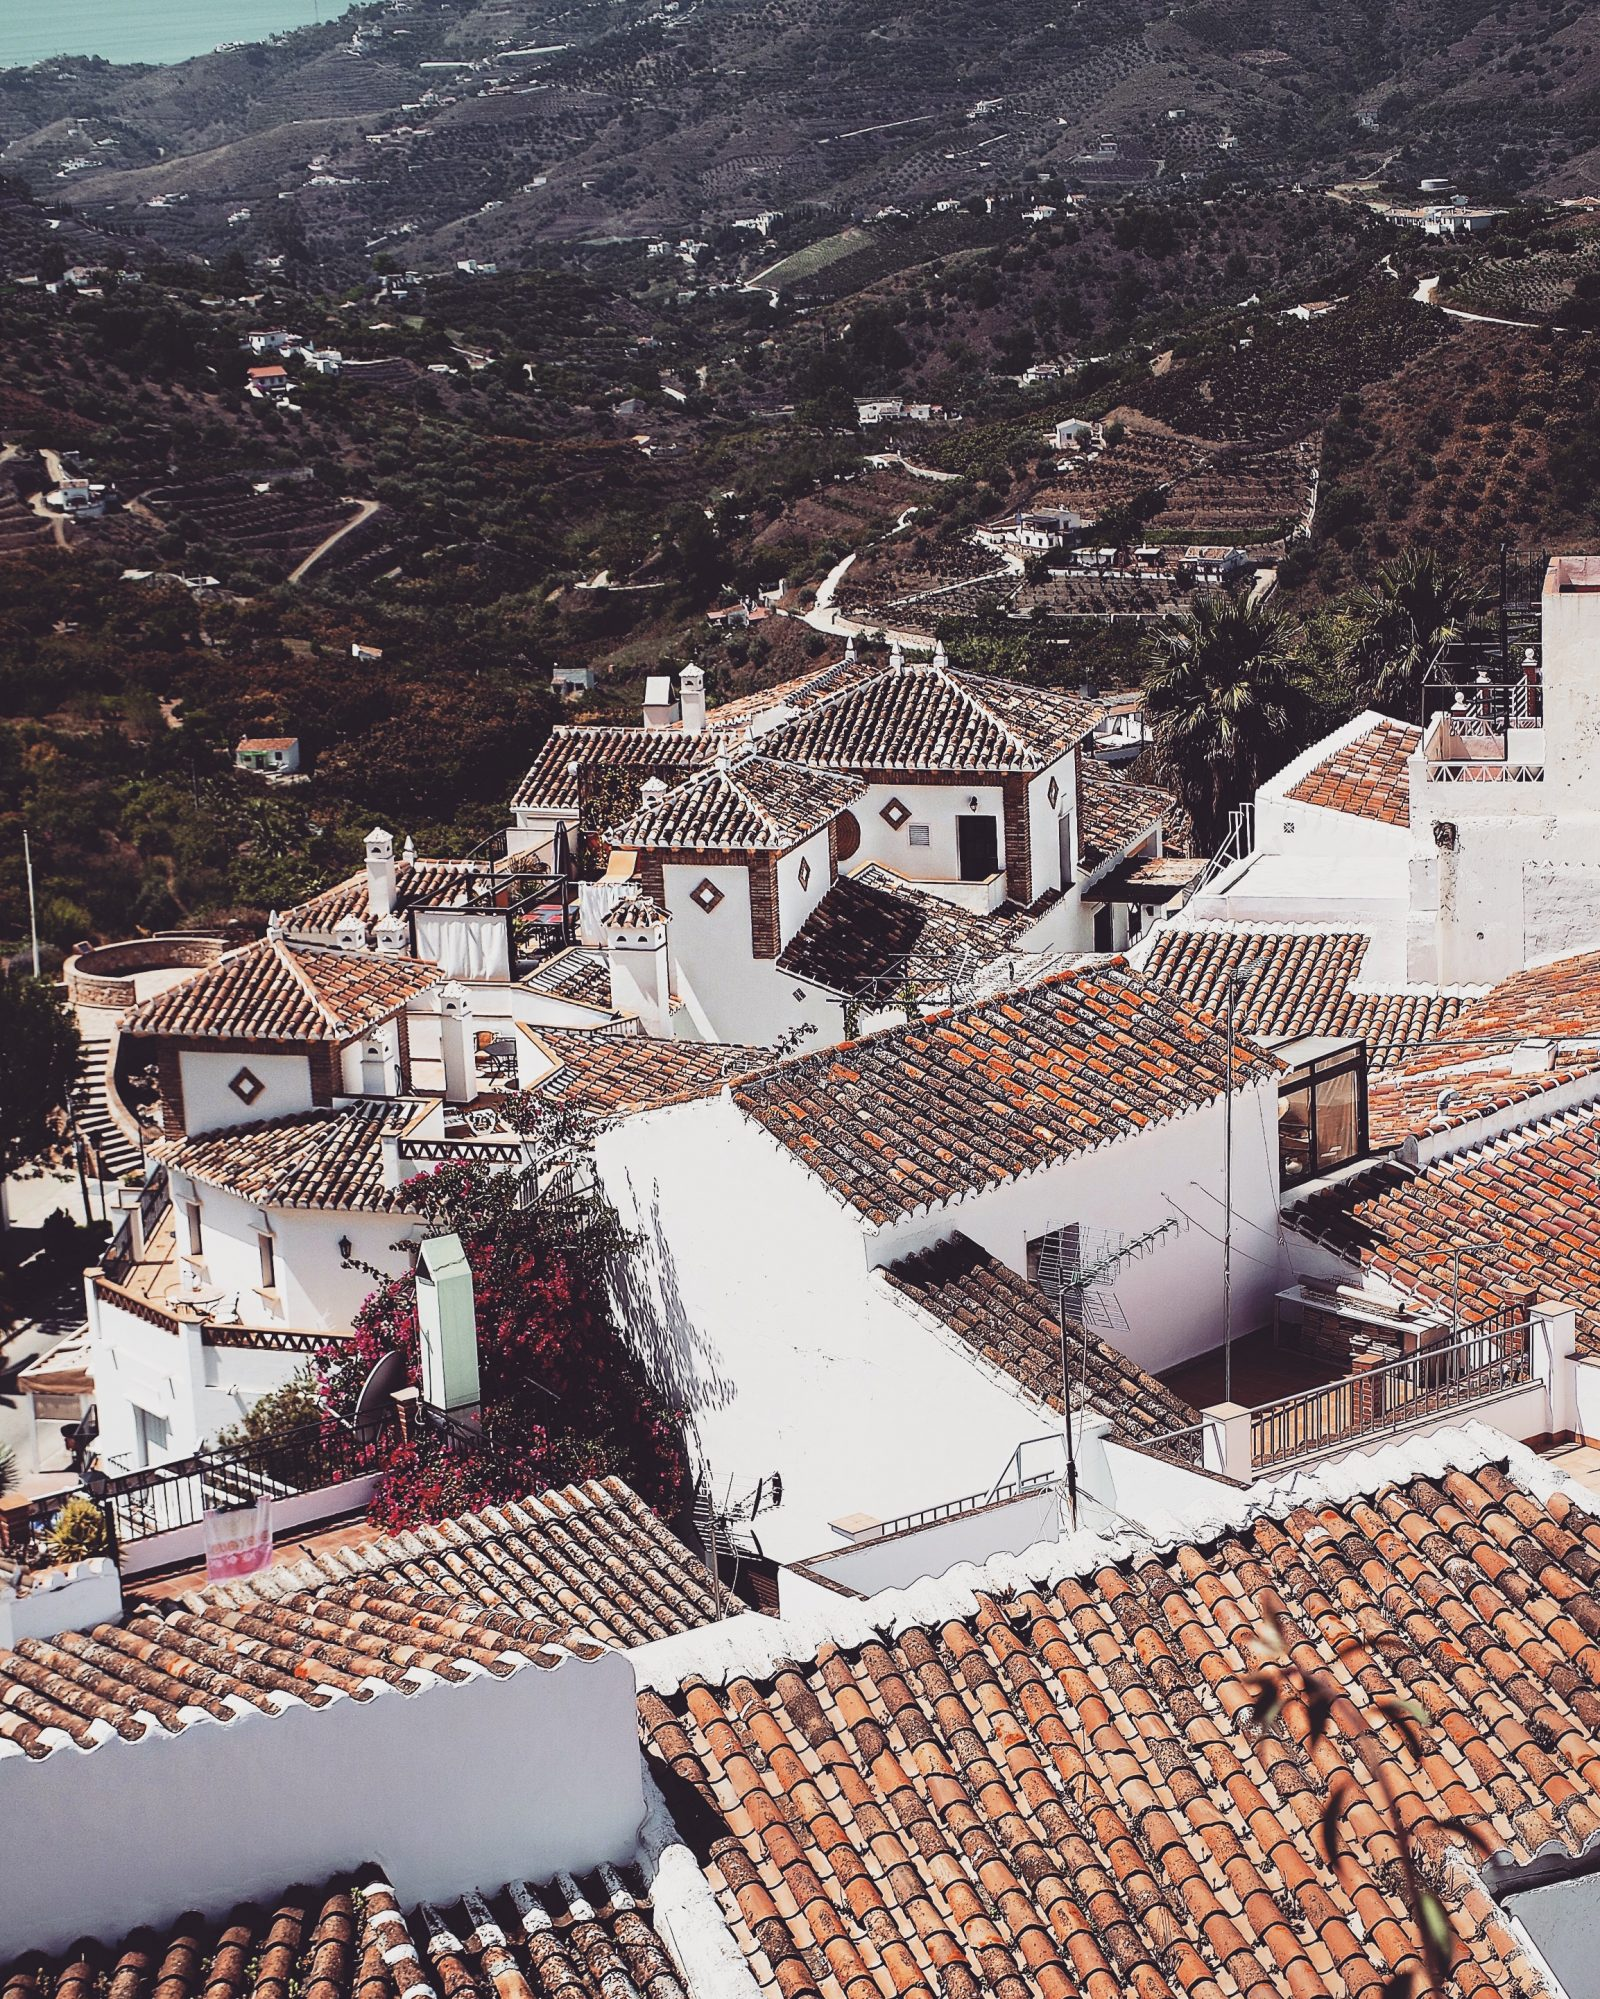 Otterbox Out Of Office Frigiliano Rooftops